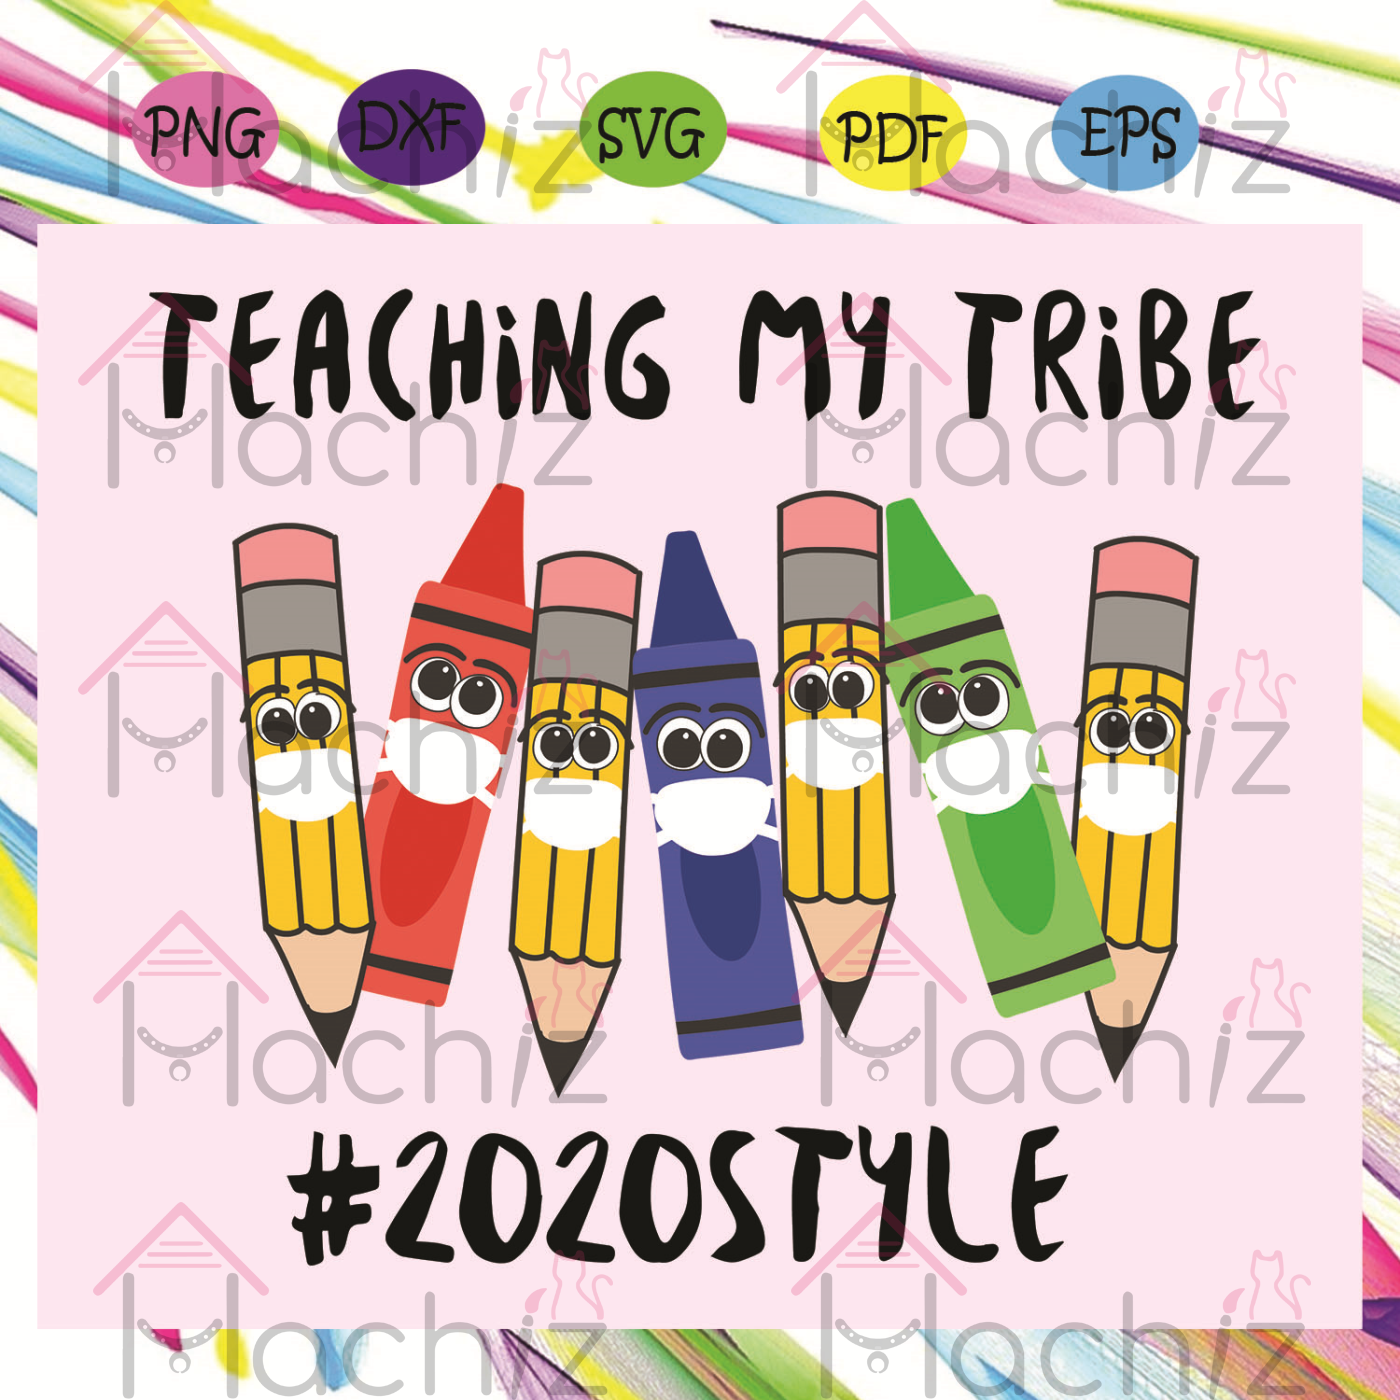 Teaching My Tribe, 100th Days svg, Back to school svg, Back to school shirt, Teacher life svg, Teacher shirt, Teacher gift, Back to school gift, pencil svg, Class 2020, school svg, school gift, school shirt, student